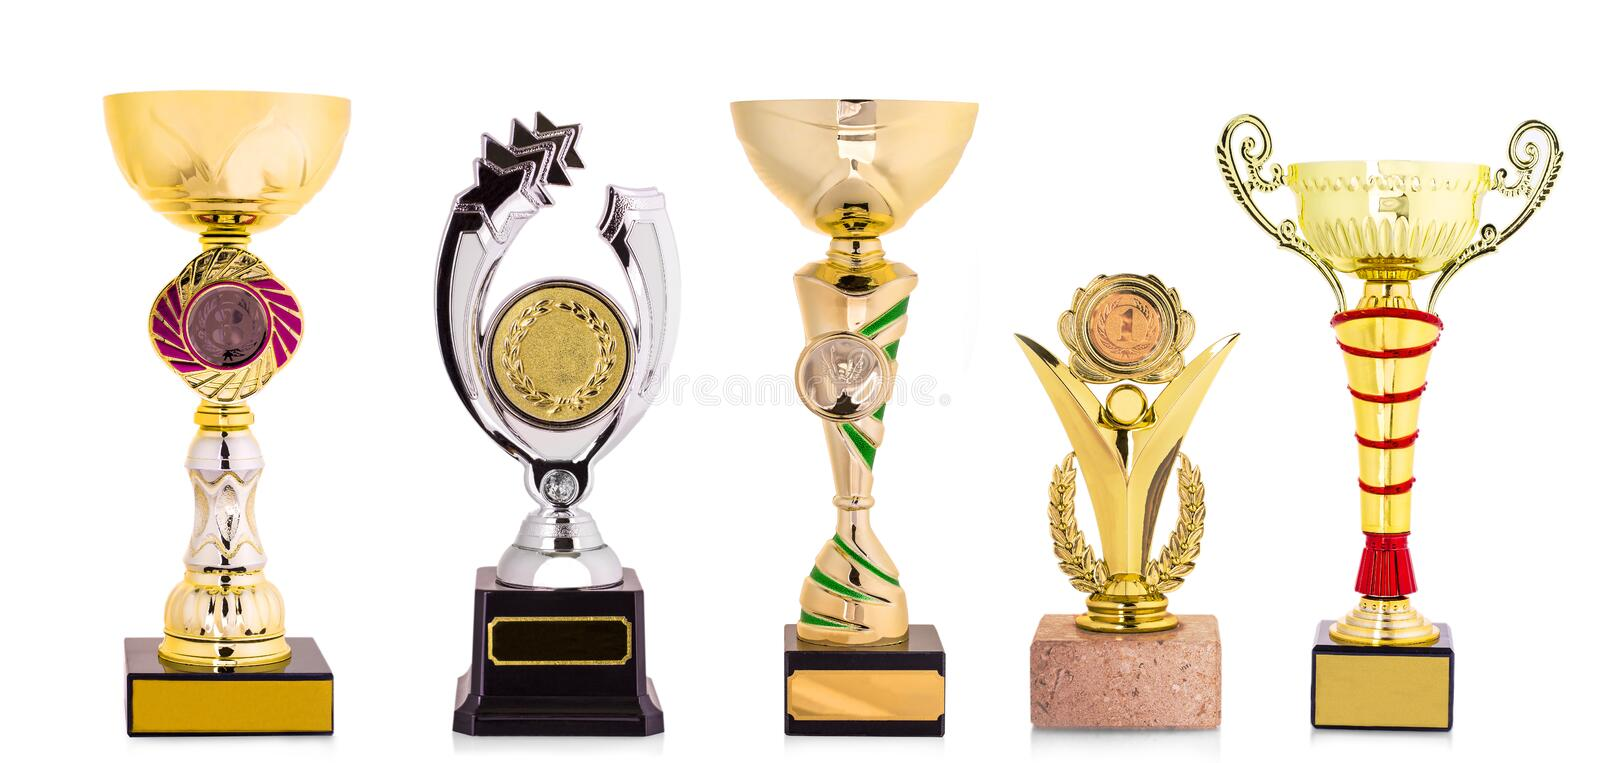 Golden trophy isolated on white background stock images